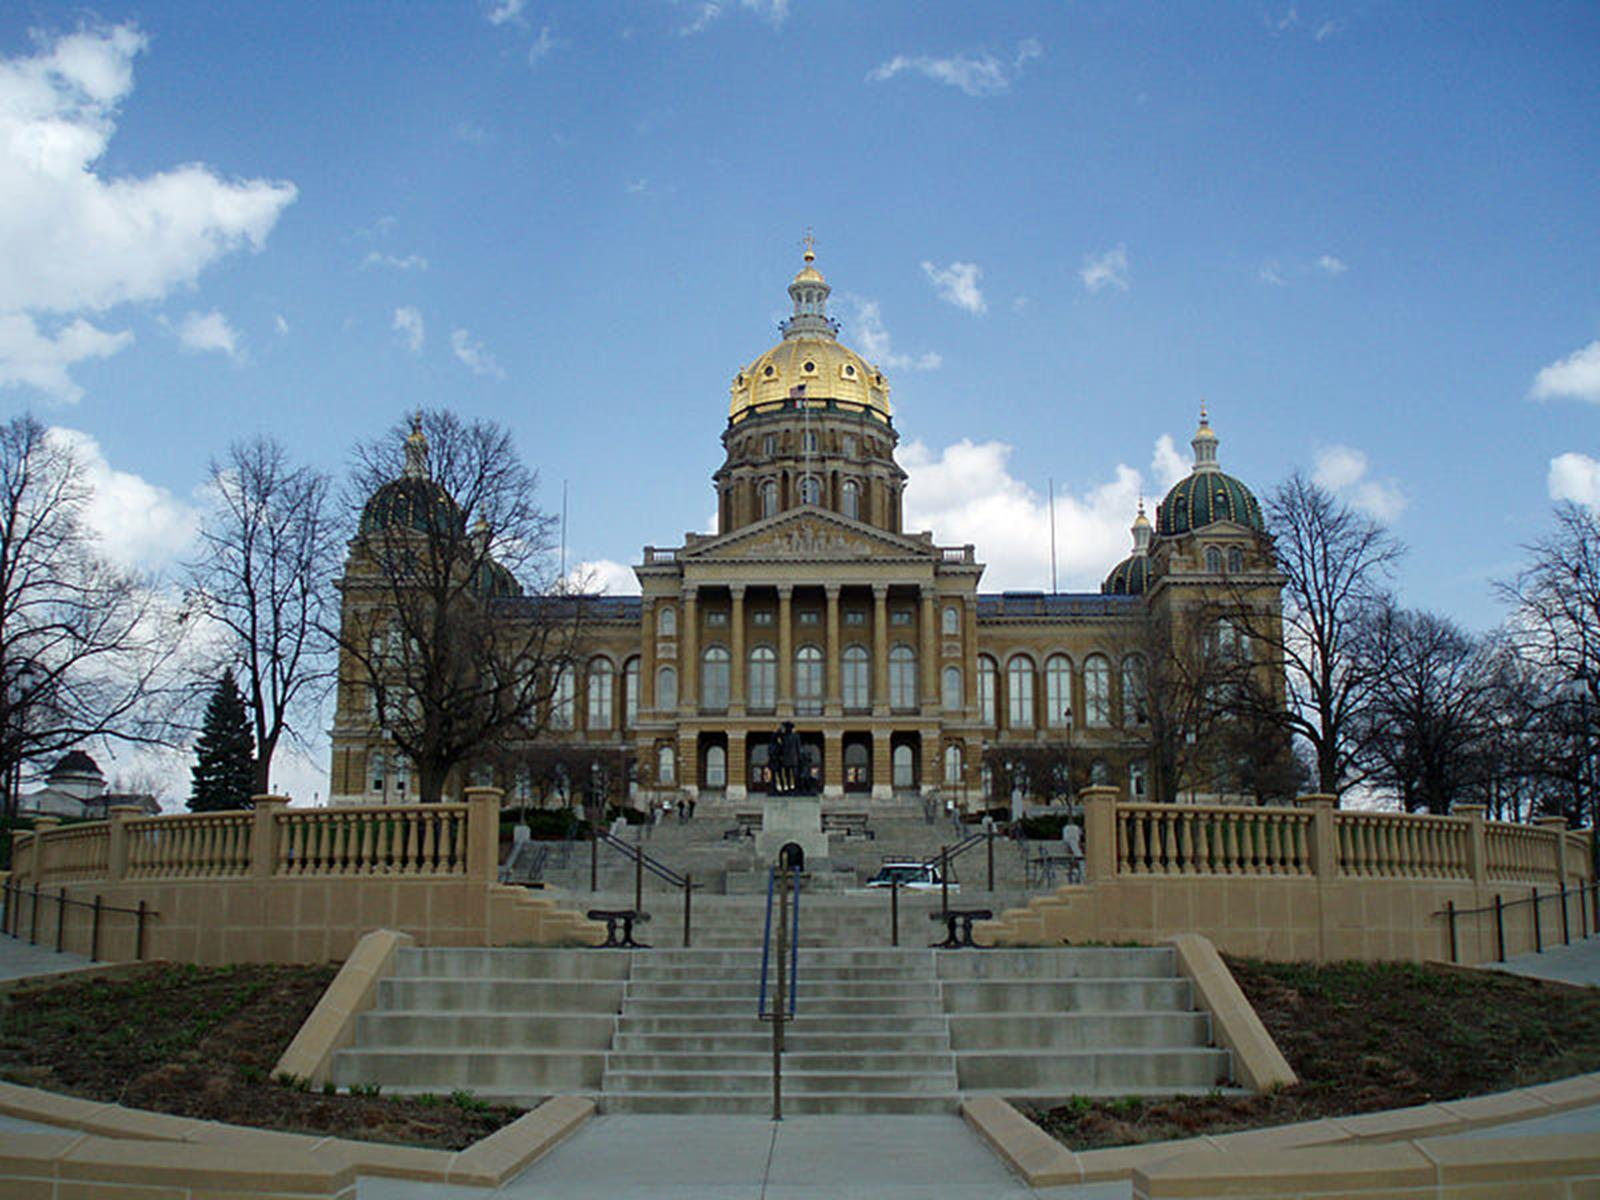 The Iowa State Capitol Building